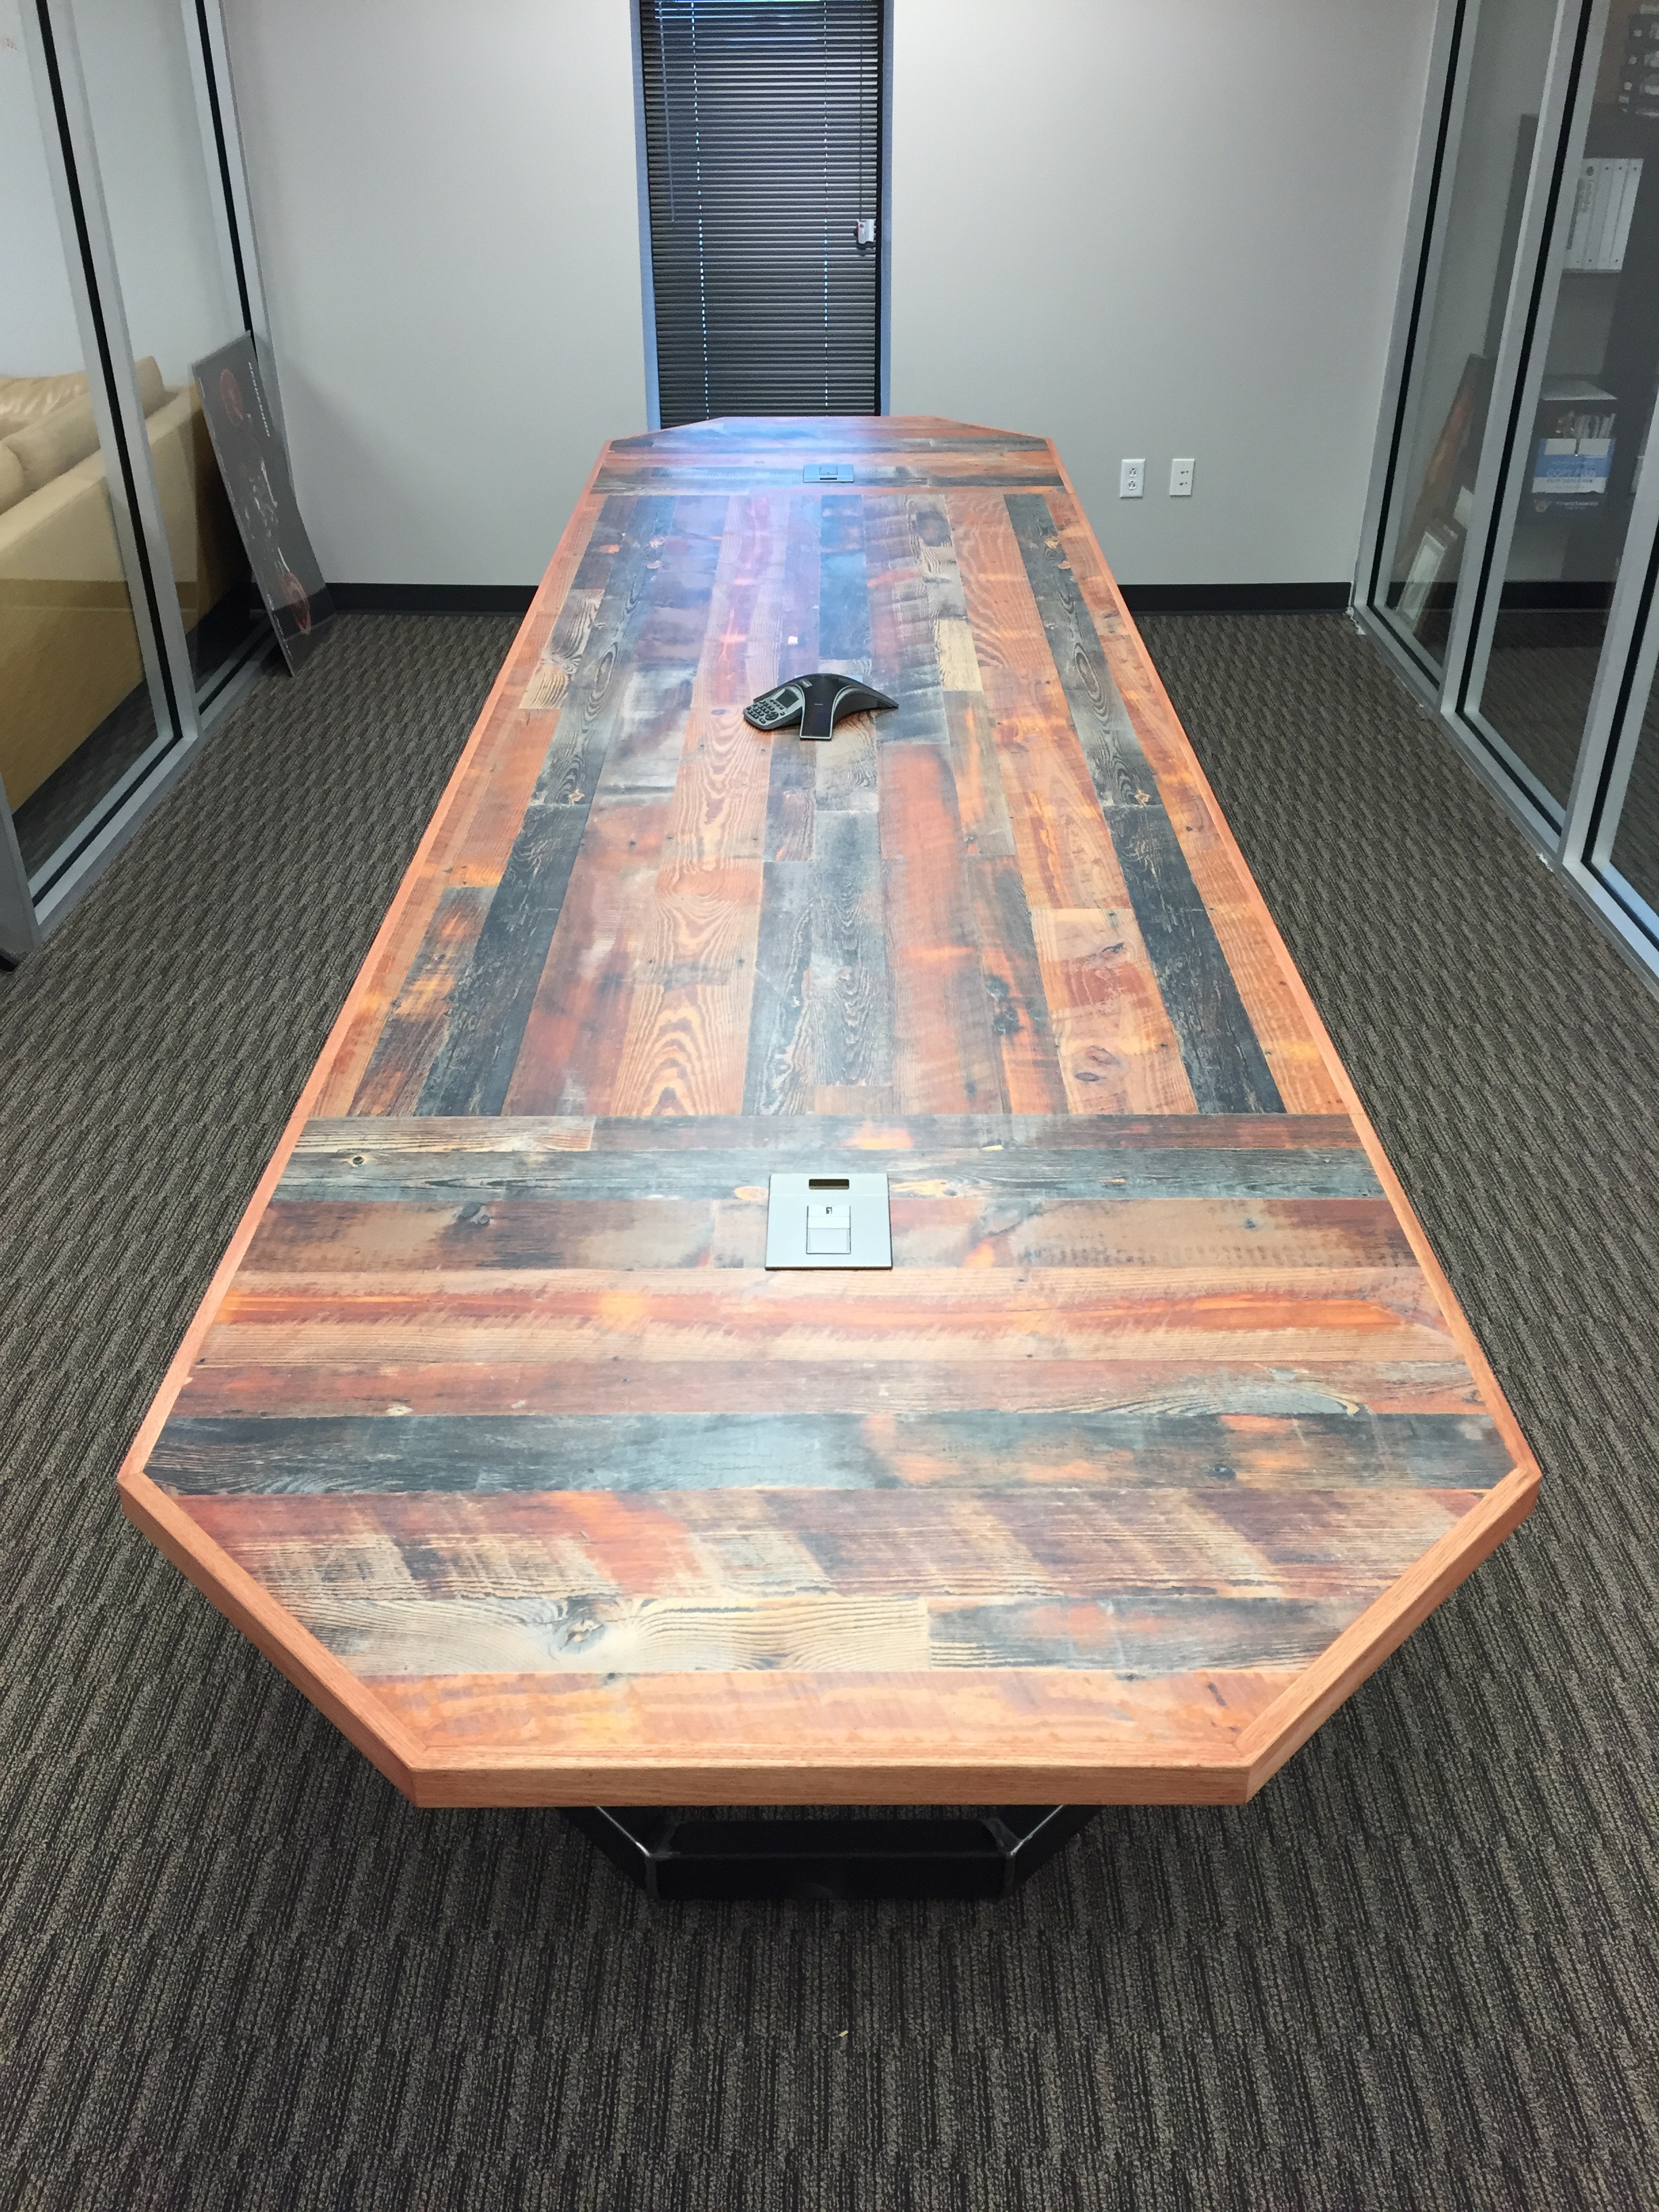 End view of the 16' conference table with built-in pop-up power outlets and USB chargers